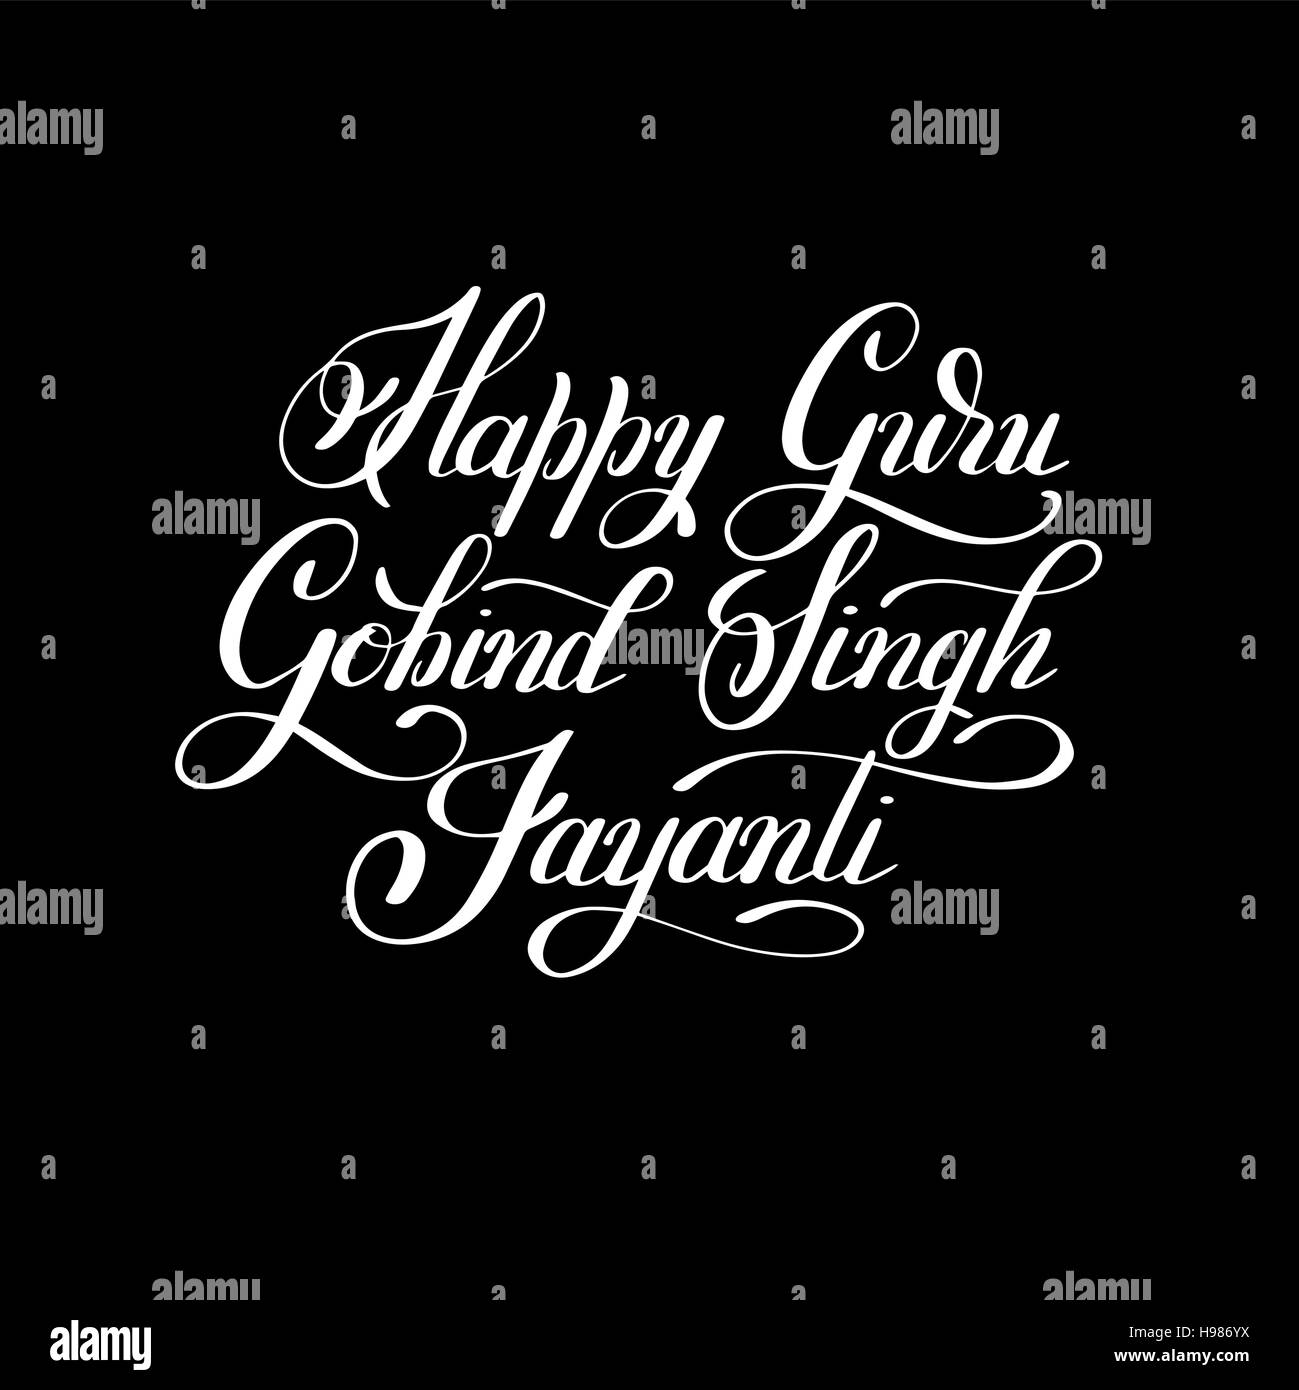 Happy Guru Gobind Singh Jayanti handwritten inscription - Stock Vector